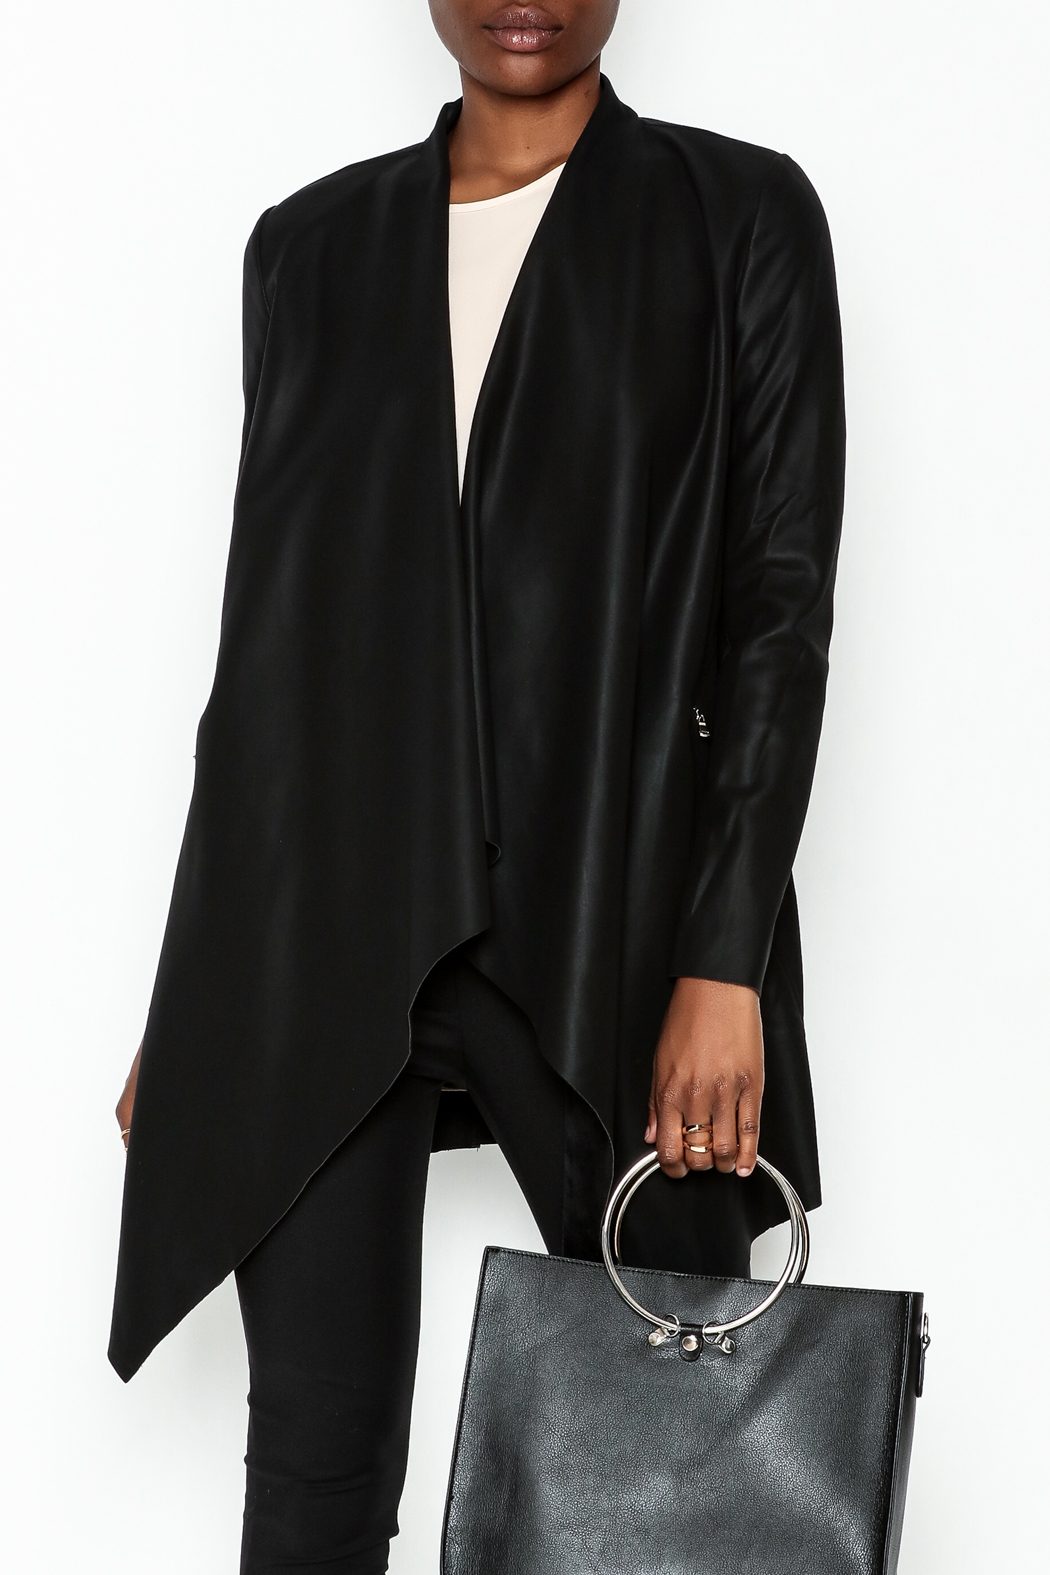 WREN & WILLA Faux Leather Open Cardigan - Main Image